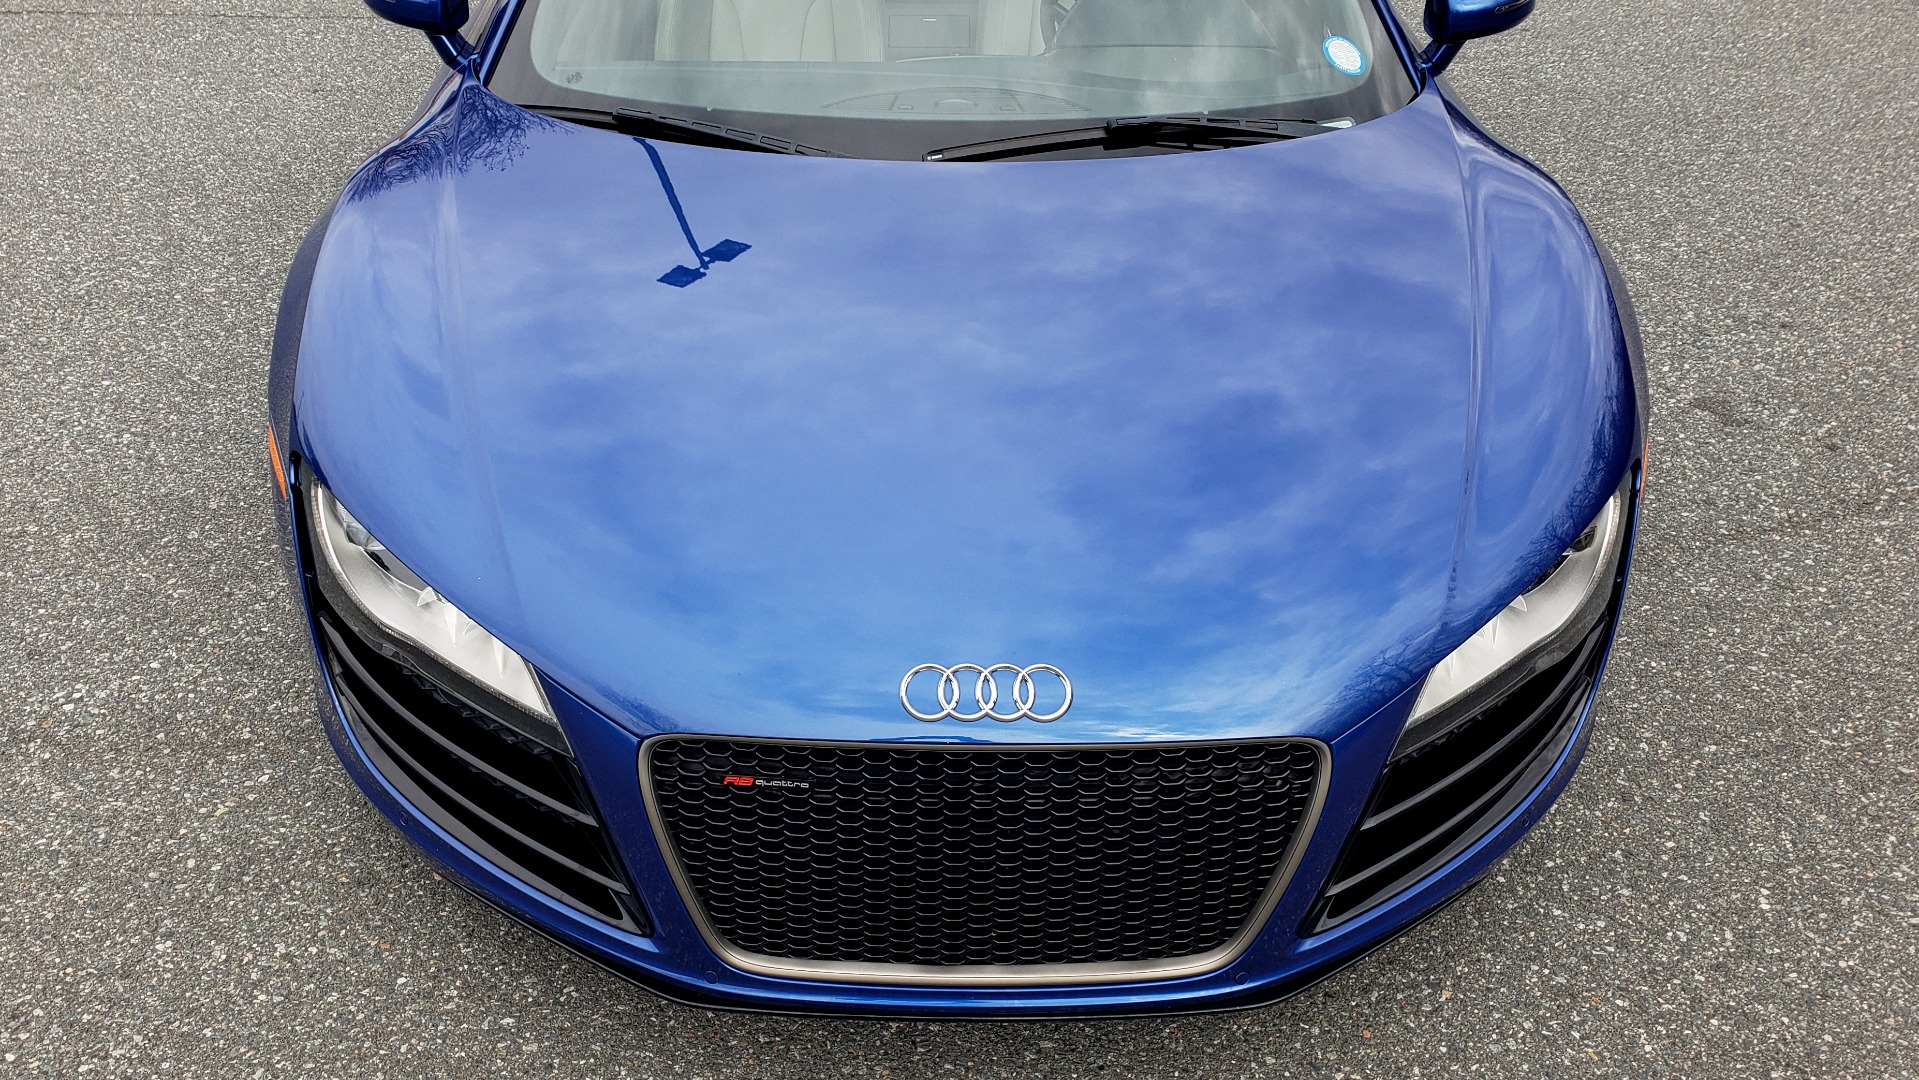 Used 2010 Audi R8 5.2L V10 / AWD / NAV / B&O SND / HTD STS / CUSTOM EXH & WHEELS for sale $78,000 at Formula Imports in Charlotte NC 28227 18